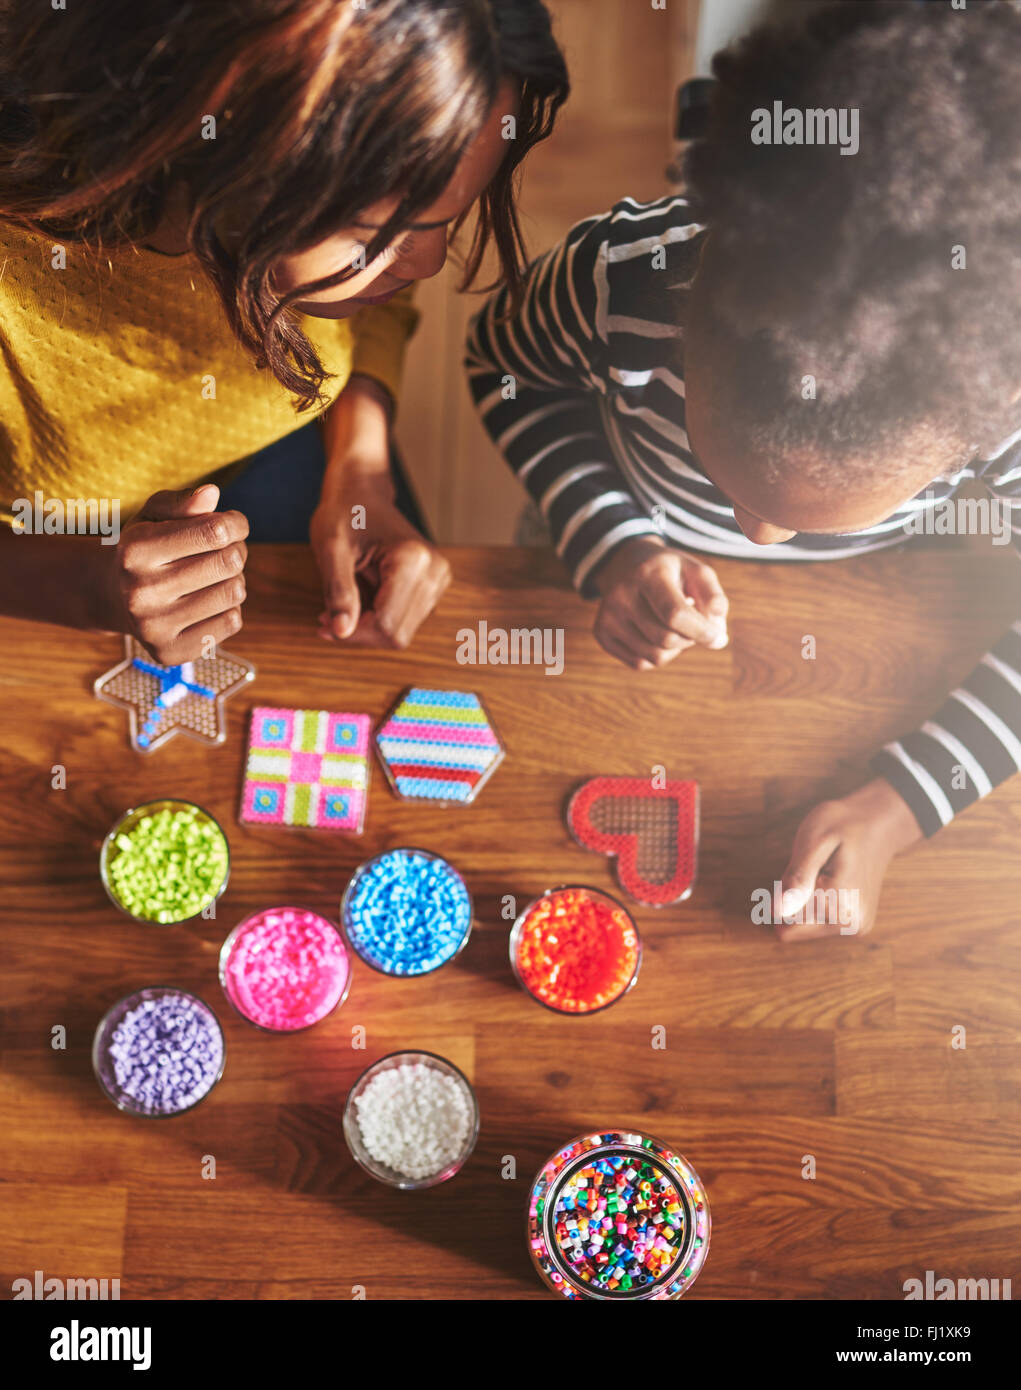 Top down view of seated adult and child finishing up their bead crafting project on wooden table with various jars - Stock Image